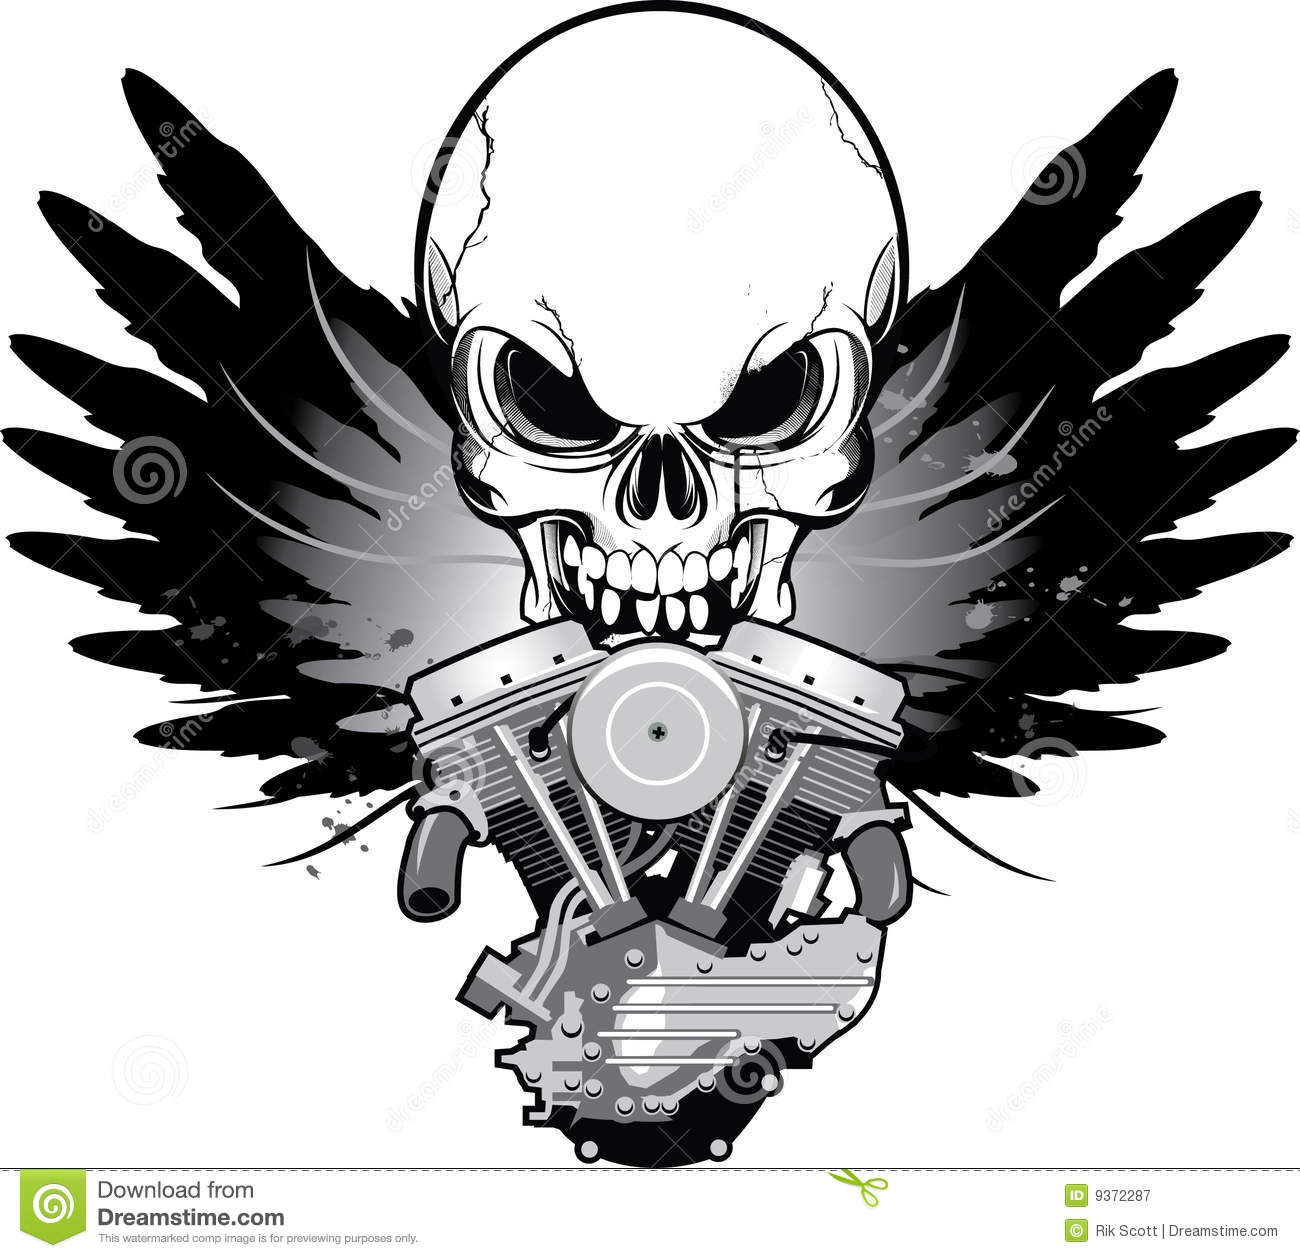 Winged motorcycle engine with skull